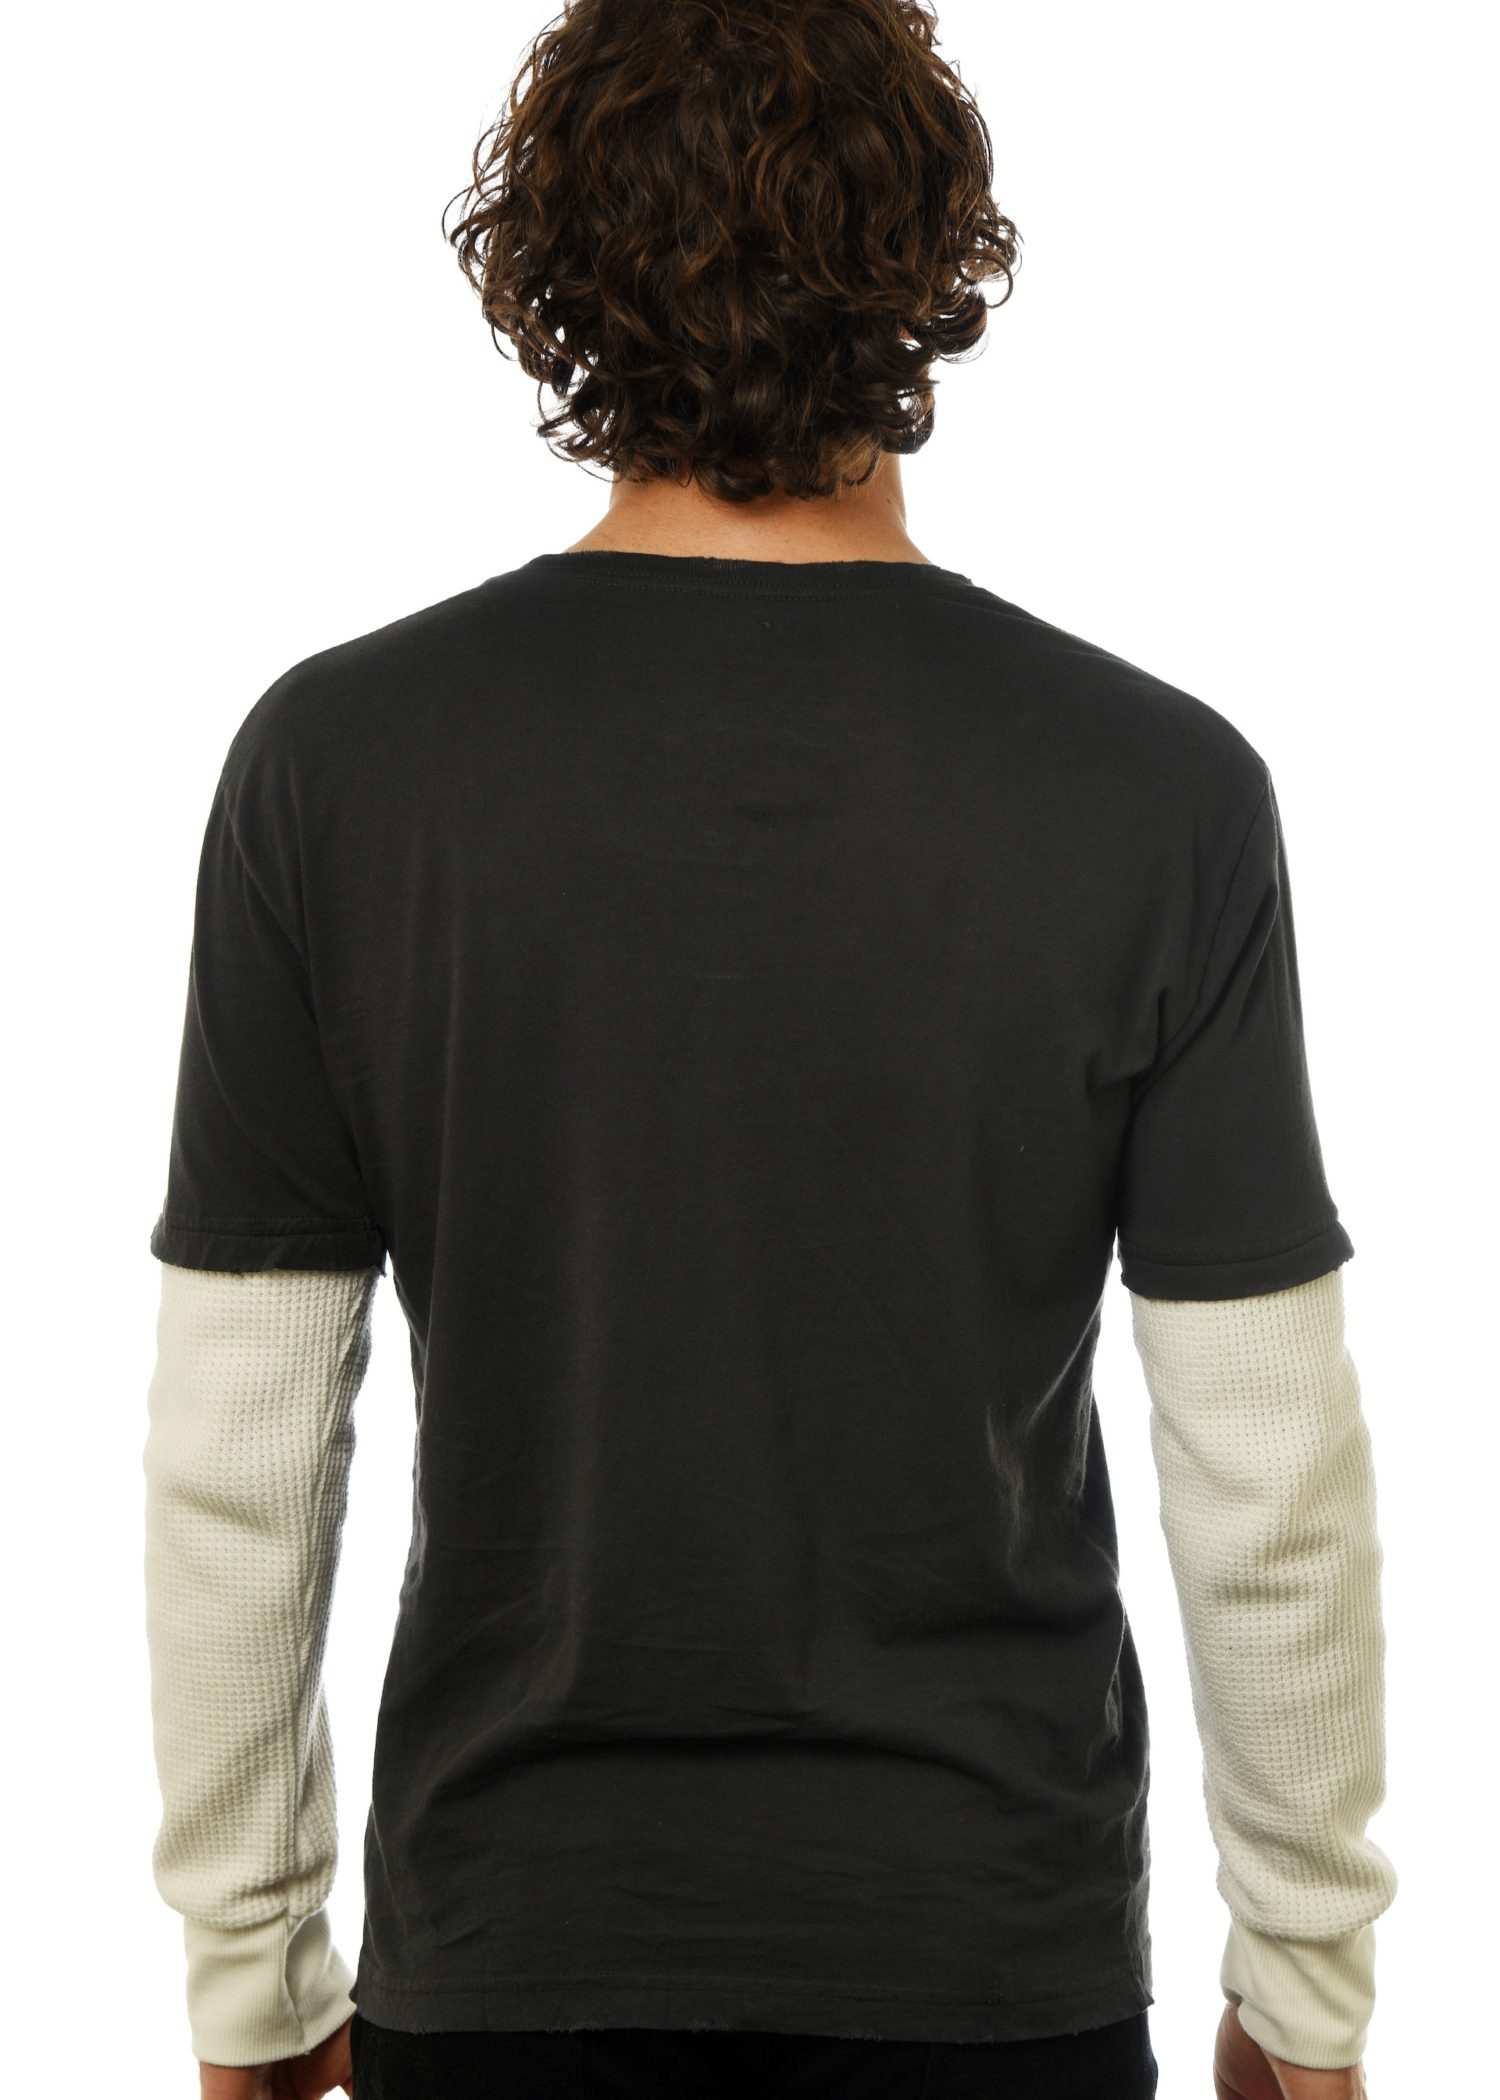 GG 303 -Men's Thermal Contrast 2fer back